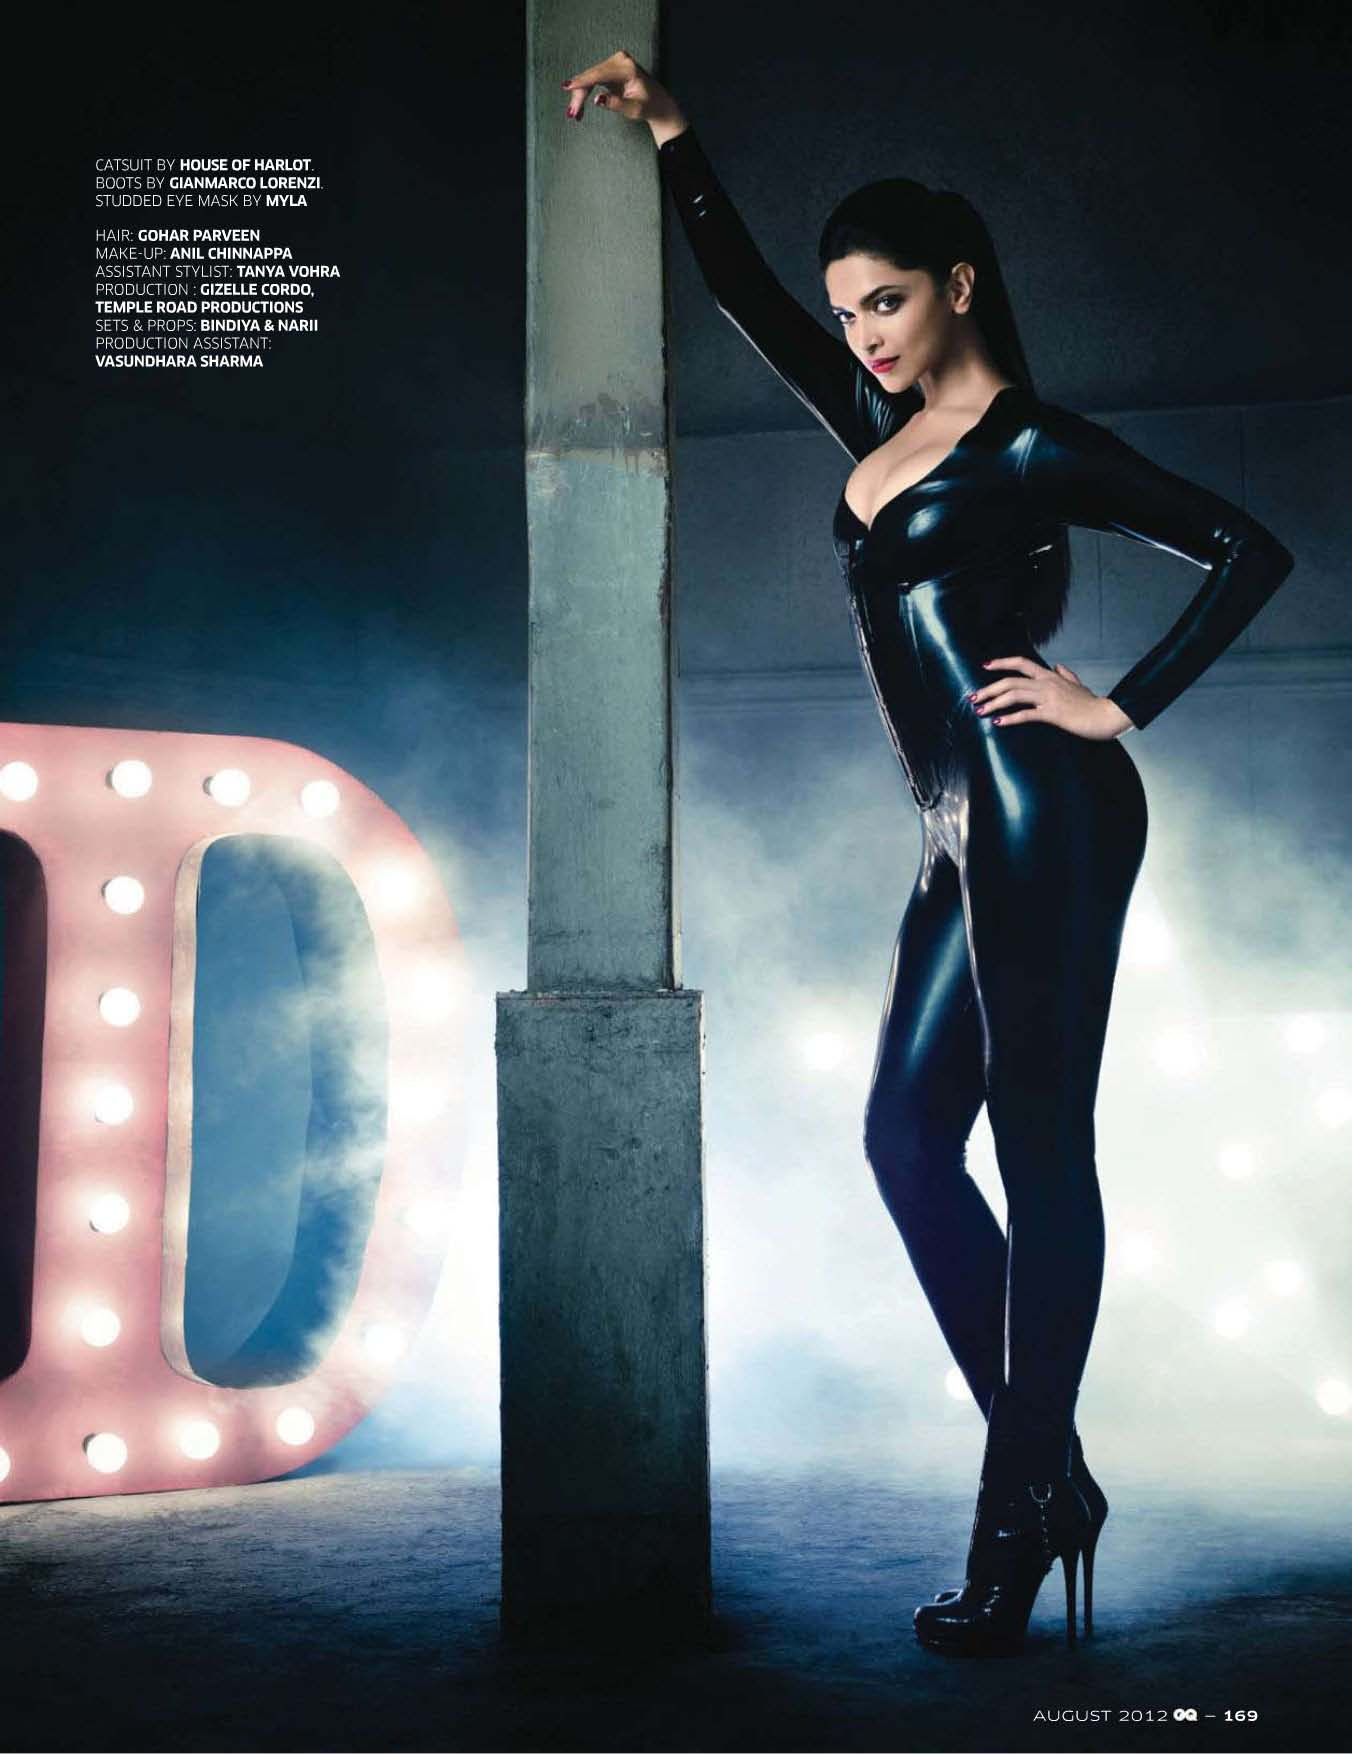 60579_Pagesfromgq_india_2012_08_aug_4_Page_8_122_111lo.jpg